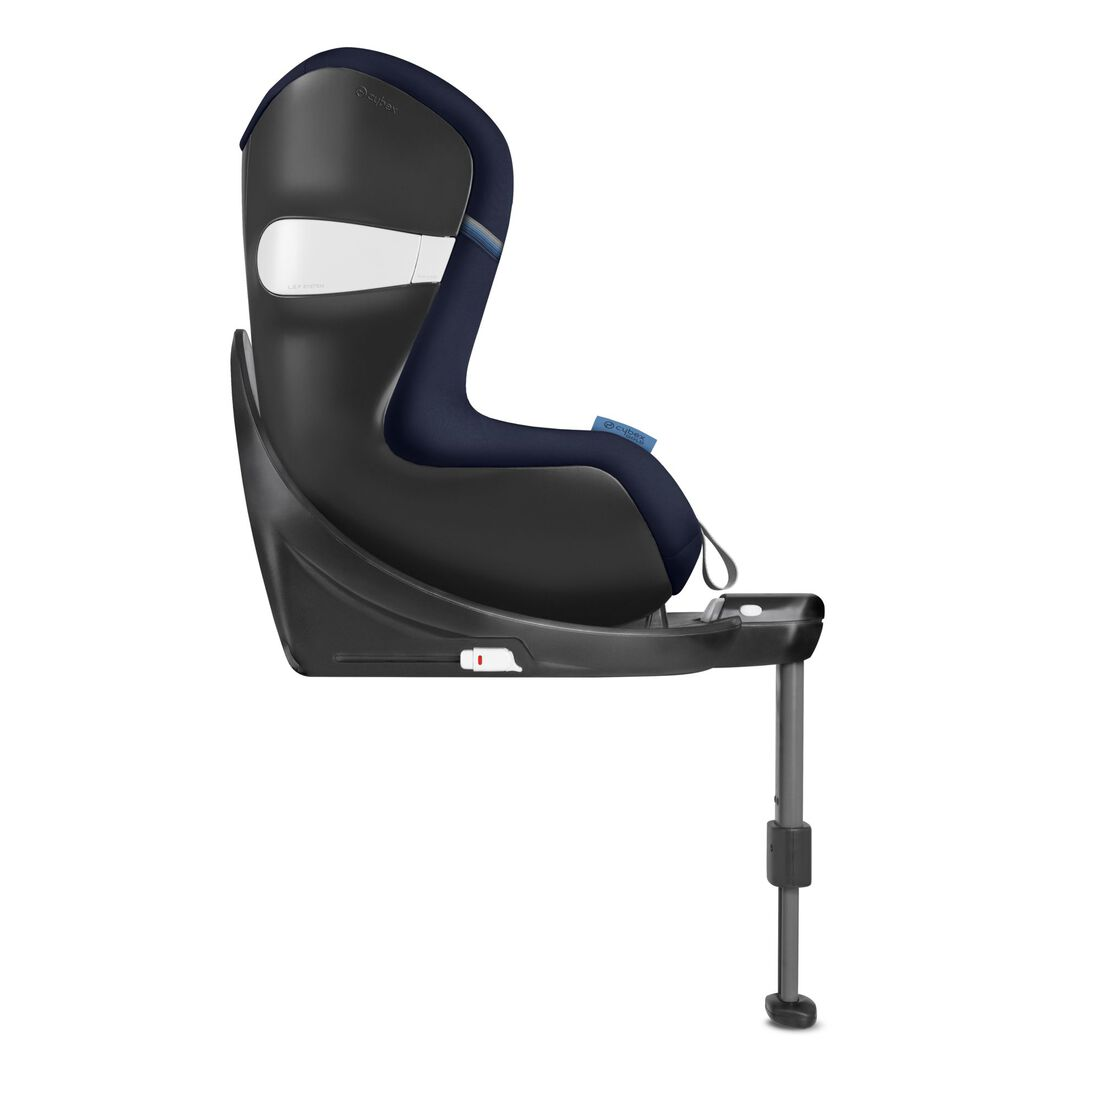 CYBEX Sirona M2 i-Size - Navy Blue in Navy Blue large image number 4